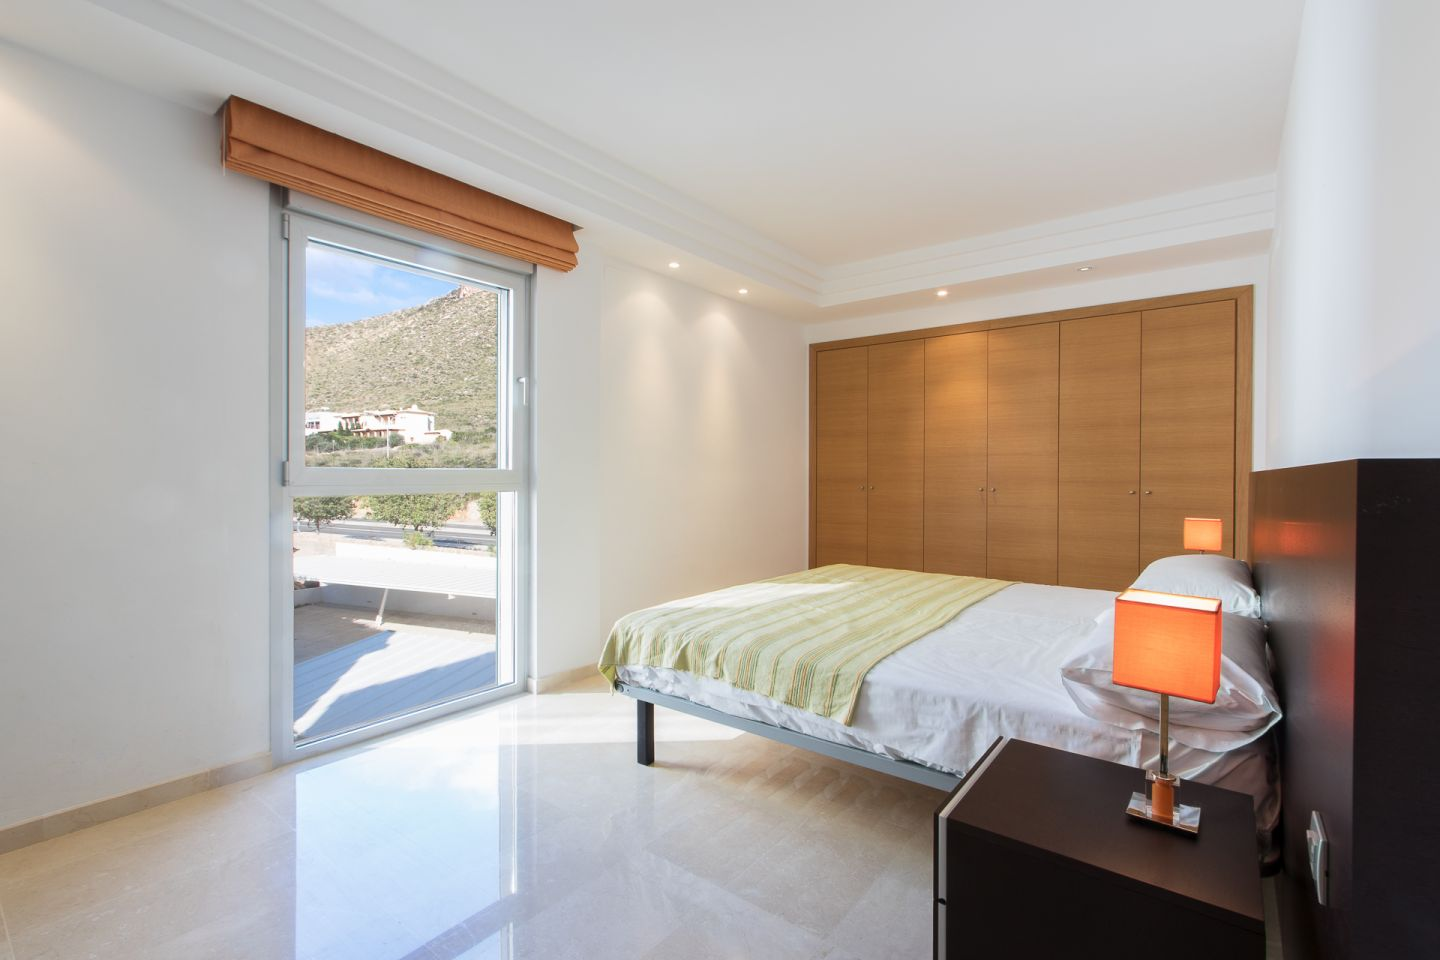 4 Bed Penthouse for sale in PUERTO POLLENSA 18